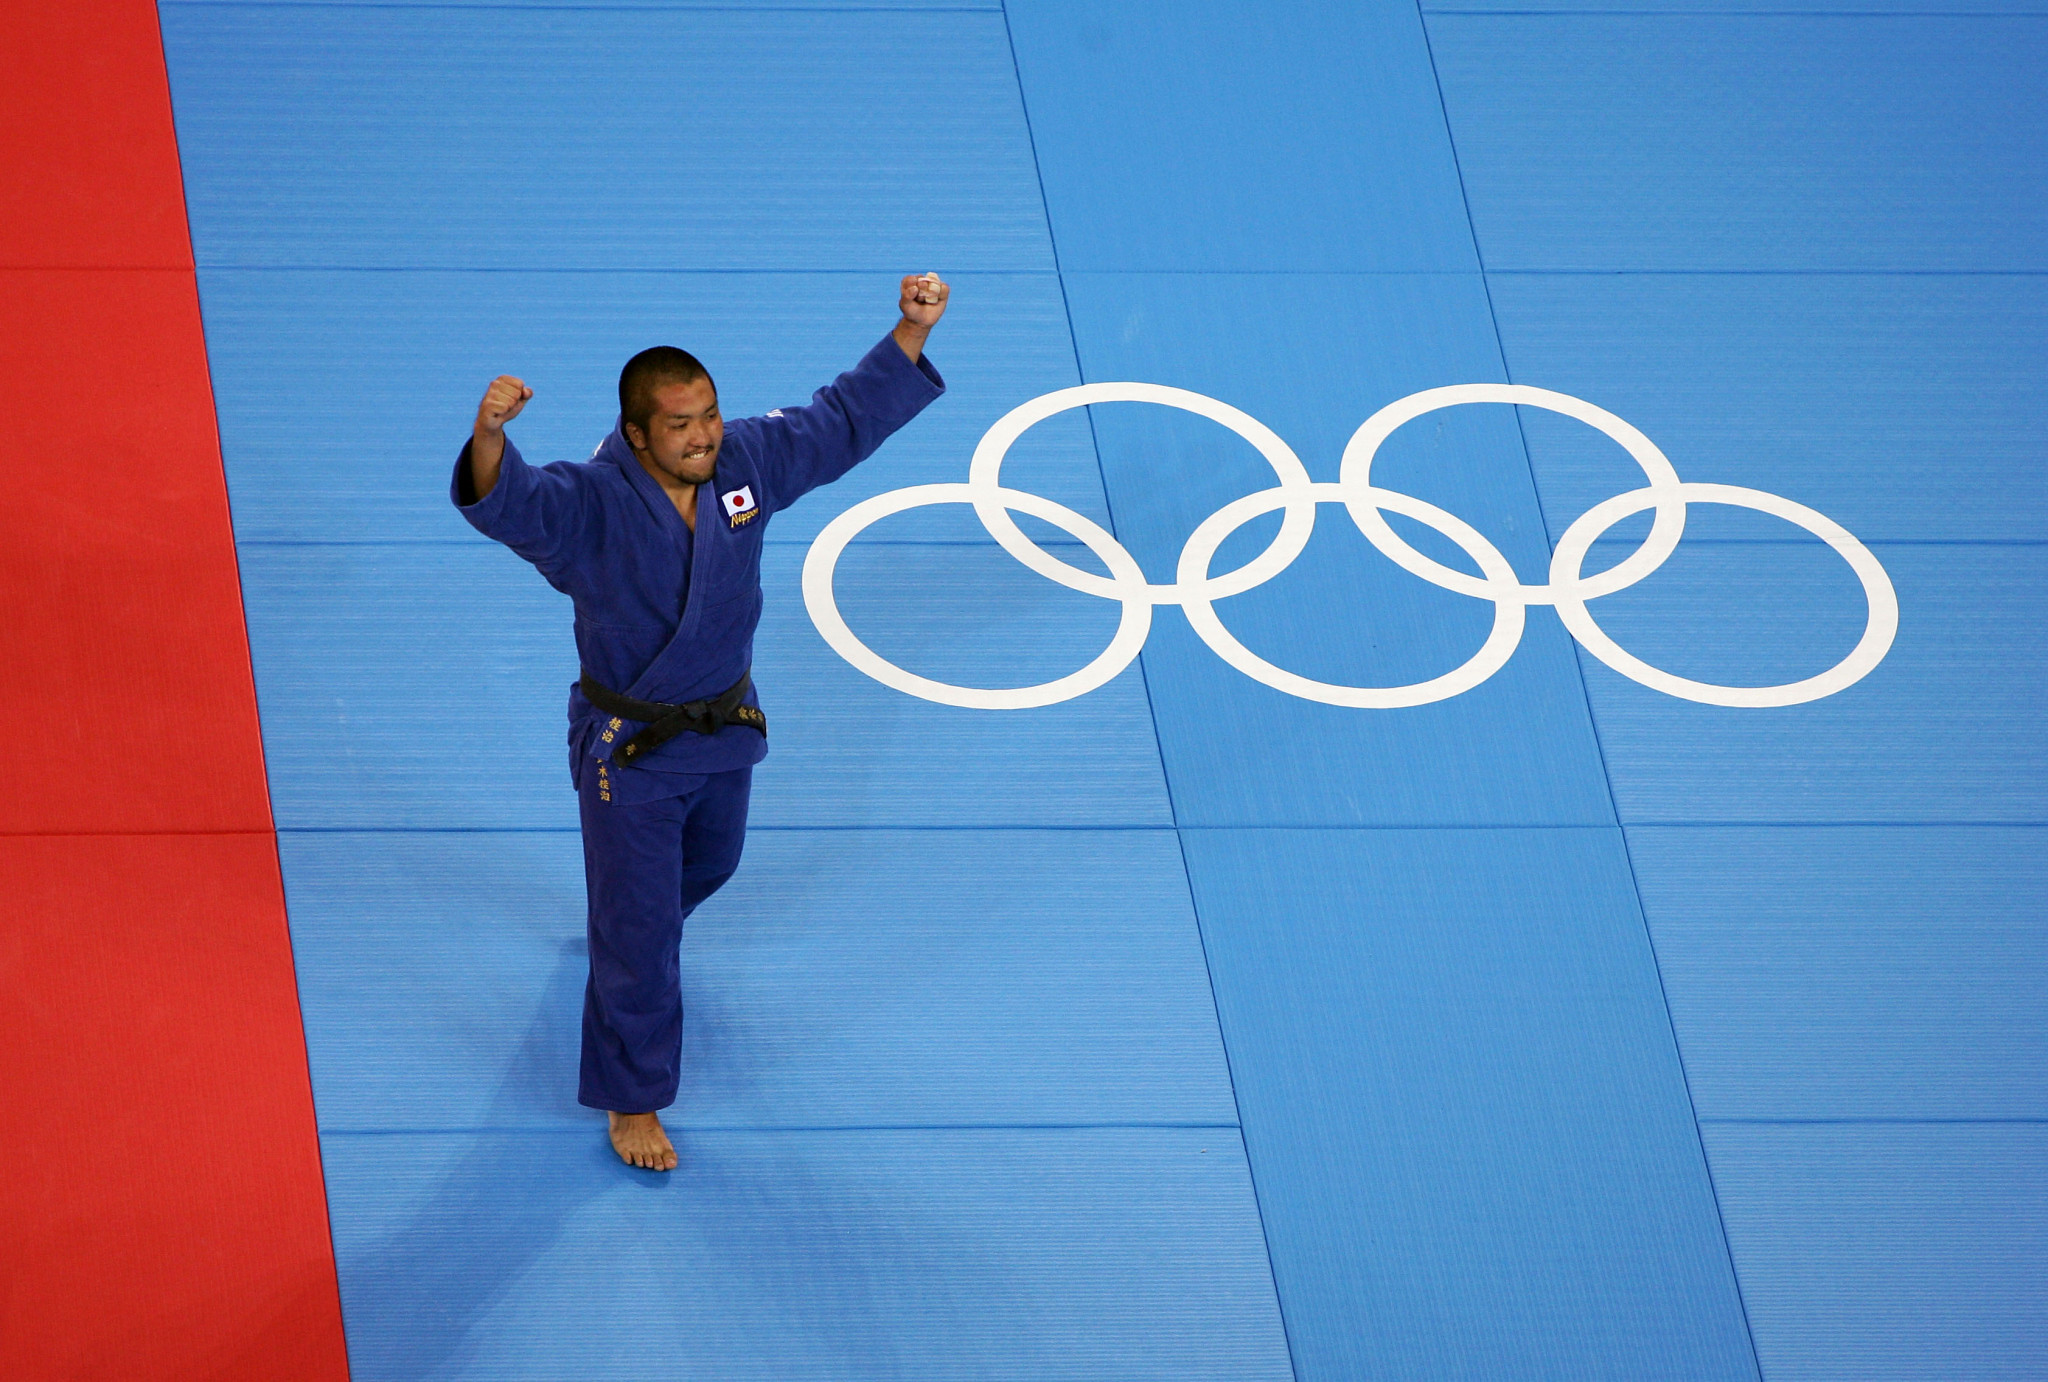 Olympic champion Suzuki appointed as head coach of Japanese men's judo team